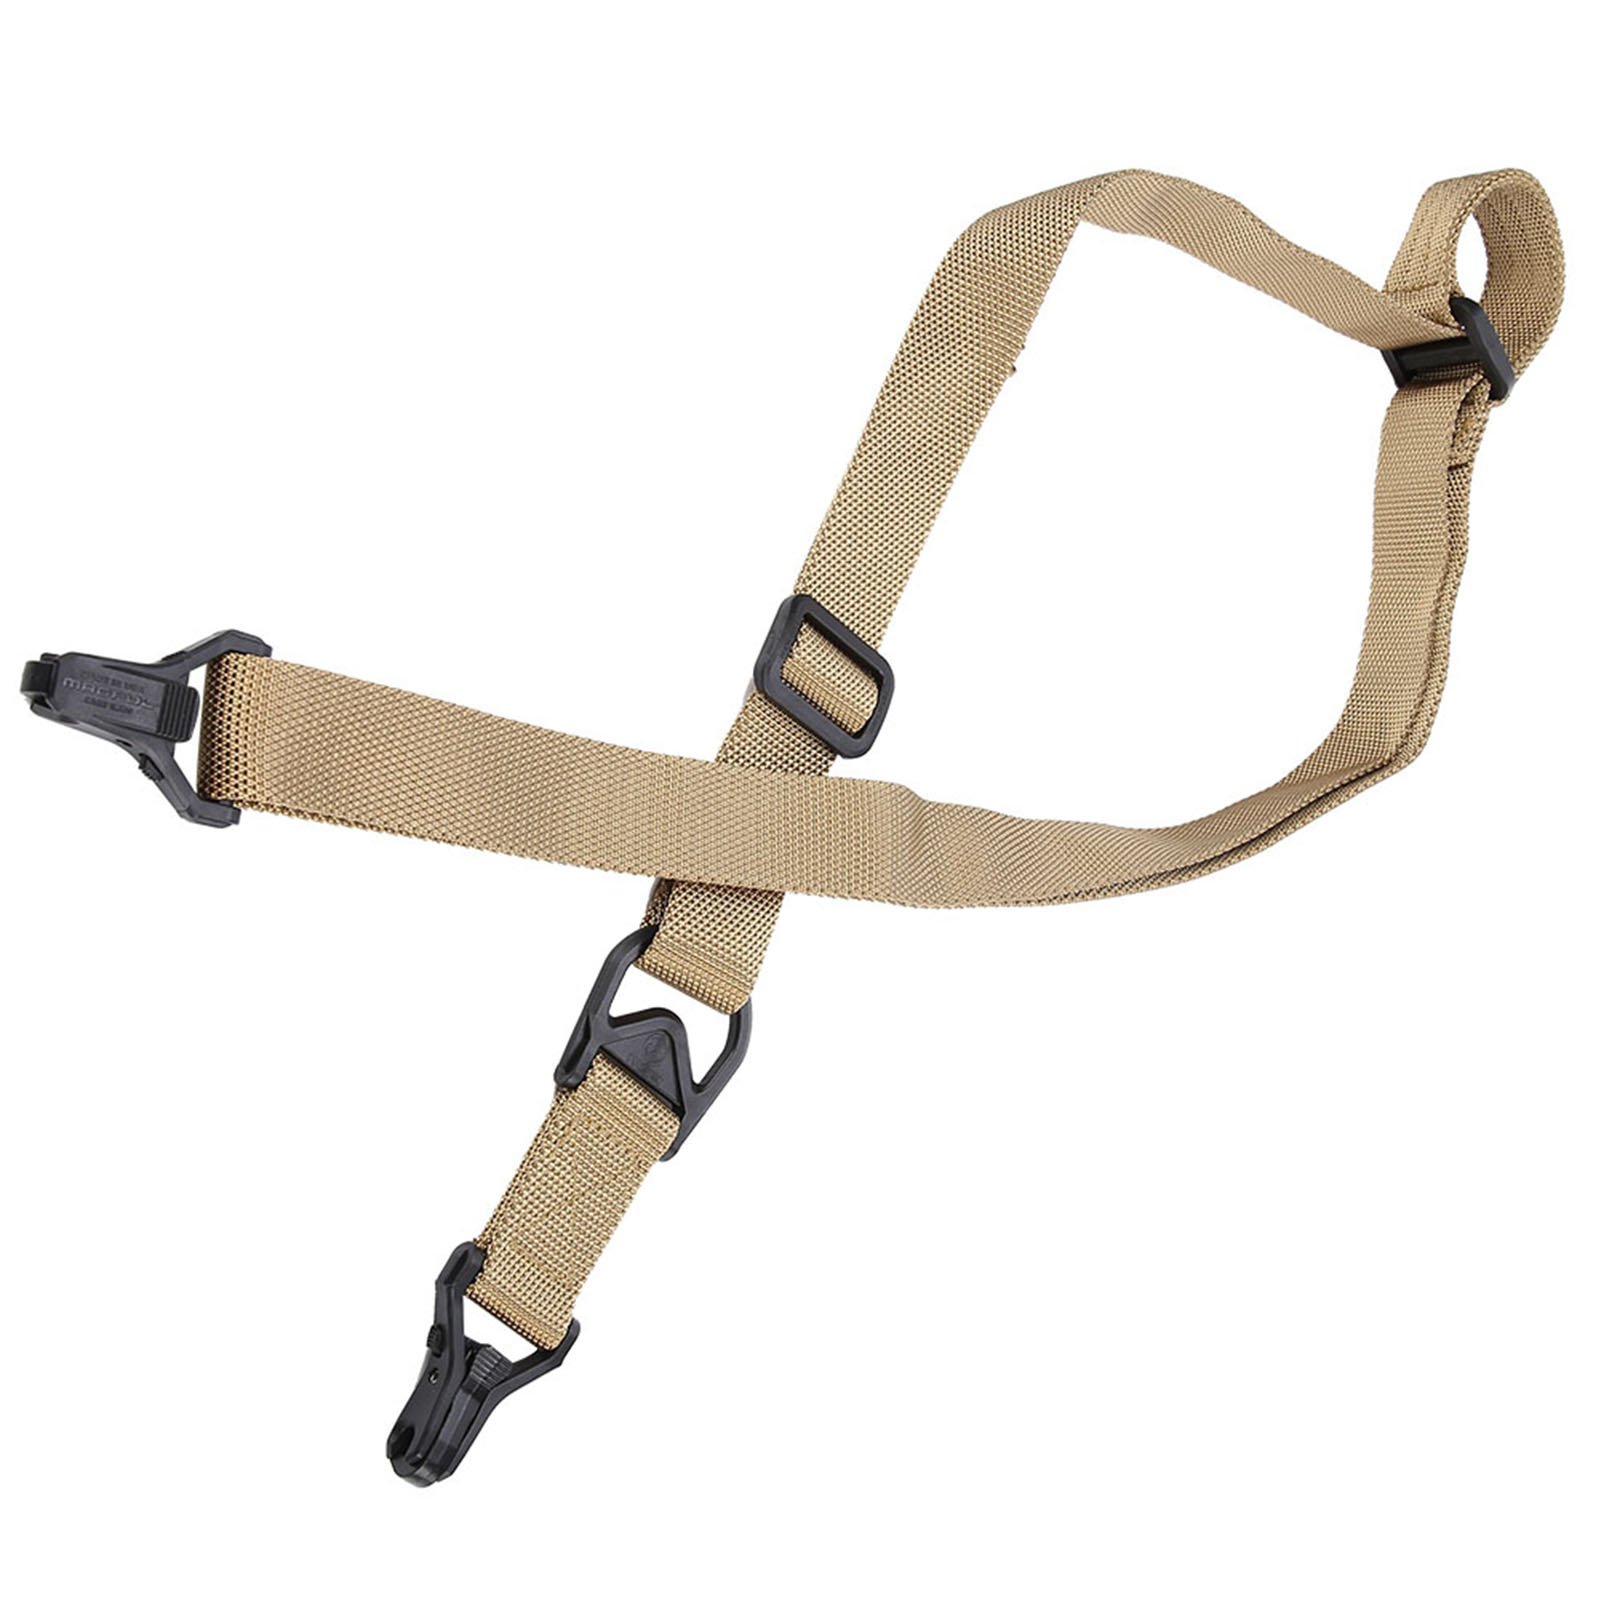 Tactical-1-2-Point-Rifle-Sling-System-Strap-Hunting-Bungee-Quick-Release-Detach thumbnail 14